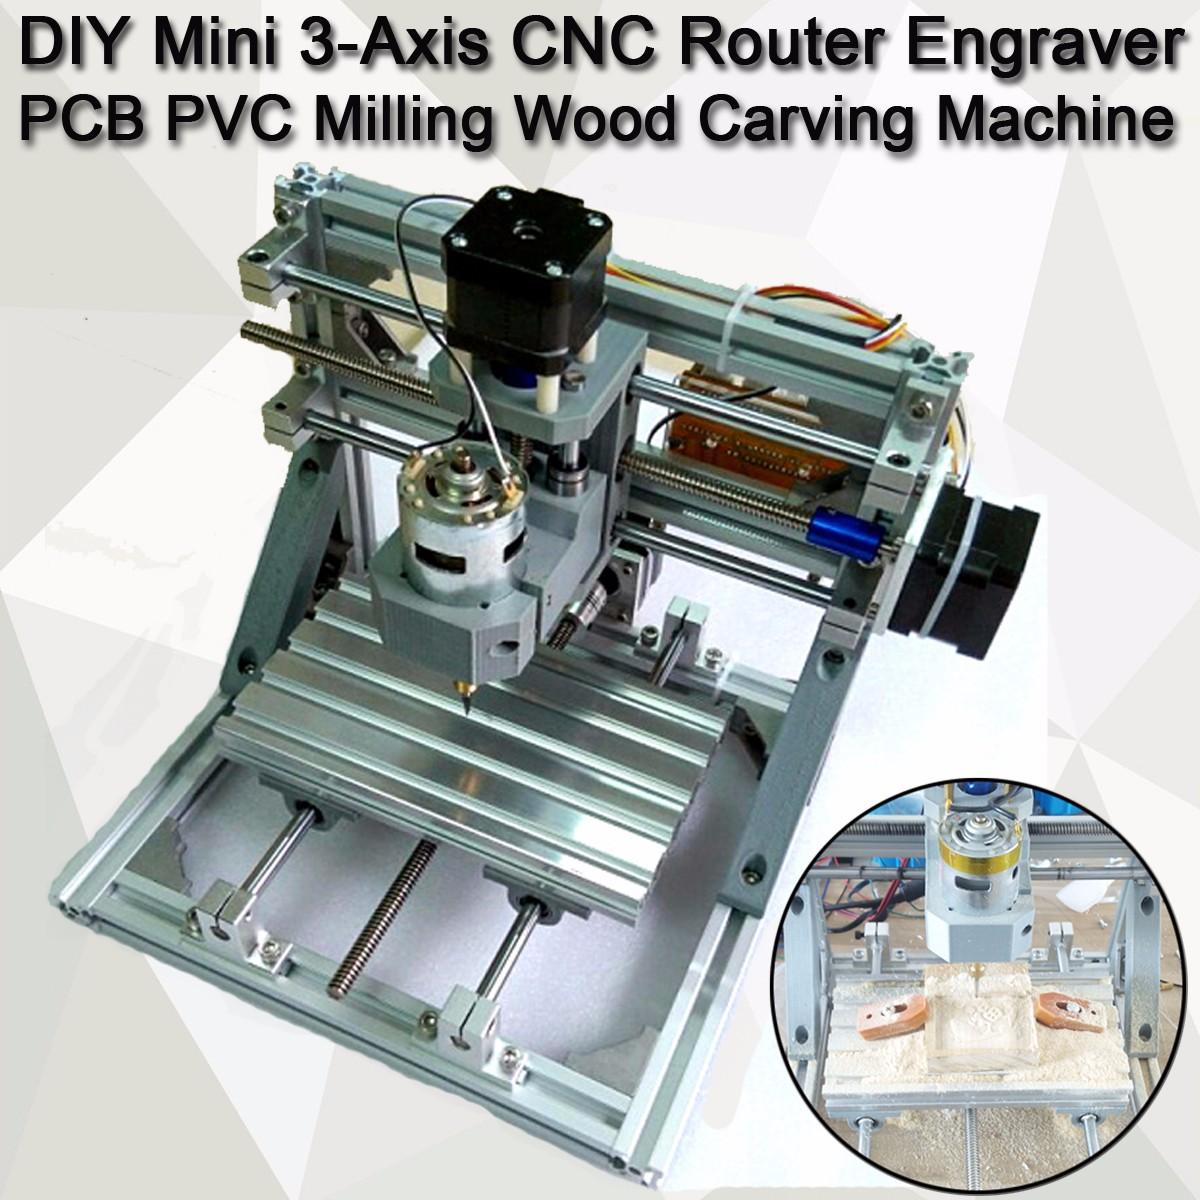 DIY Mini 3 Axis Router CNC 1610 GRBL Control CNC Machine Engraver PCB PVC Milling Wood Carving Machine working area 16x10.5x3cm дутики no limits no way no limits no way no025awmdo11